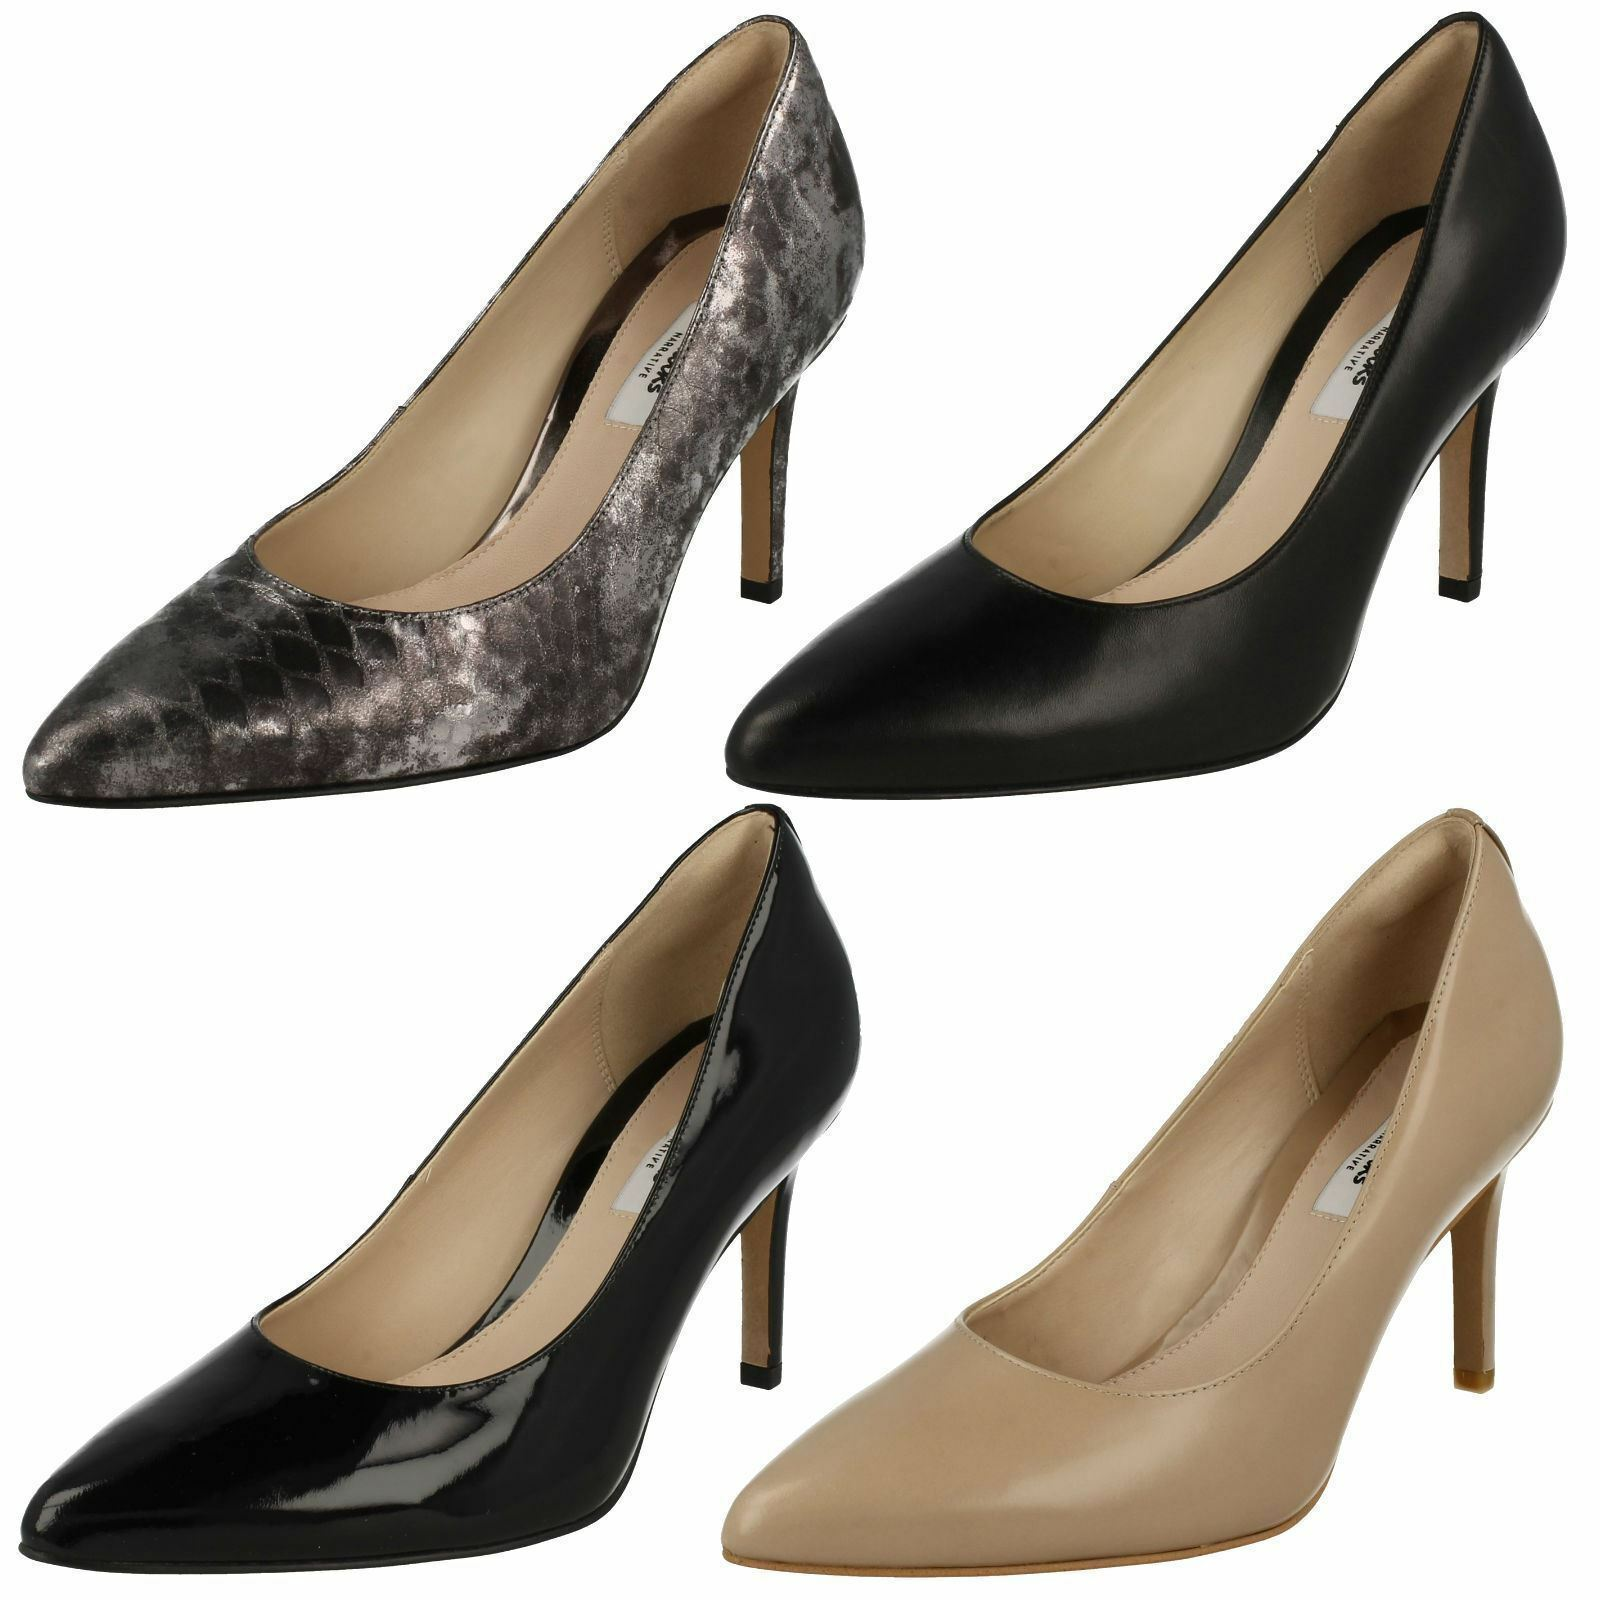 Ladies Dinah Clarks Dinah Ladies Keer High Heel Smart Leather Court Shoes D Fitting f3e4b9